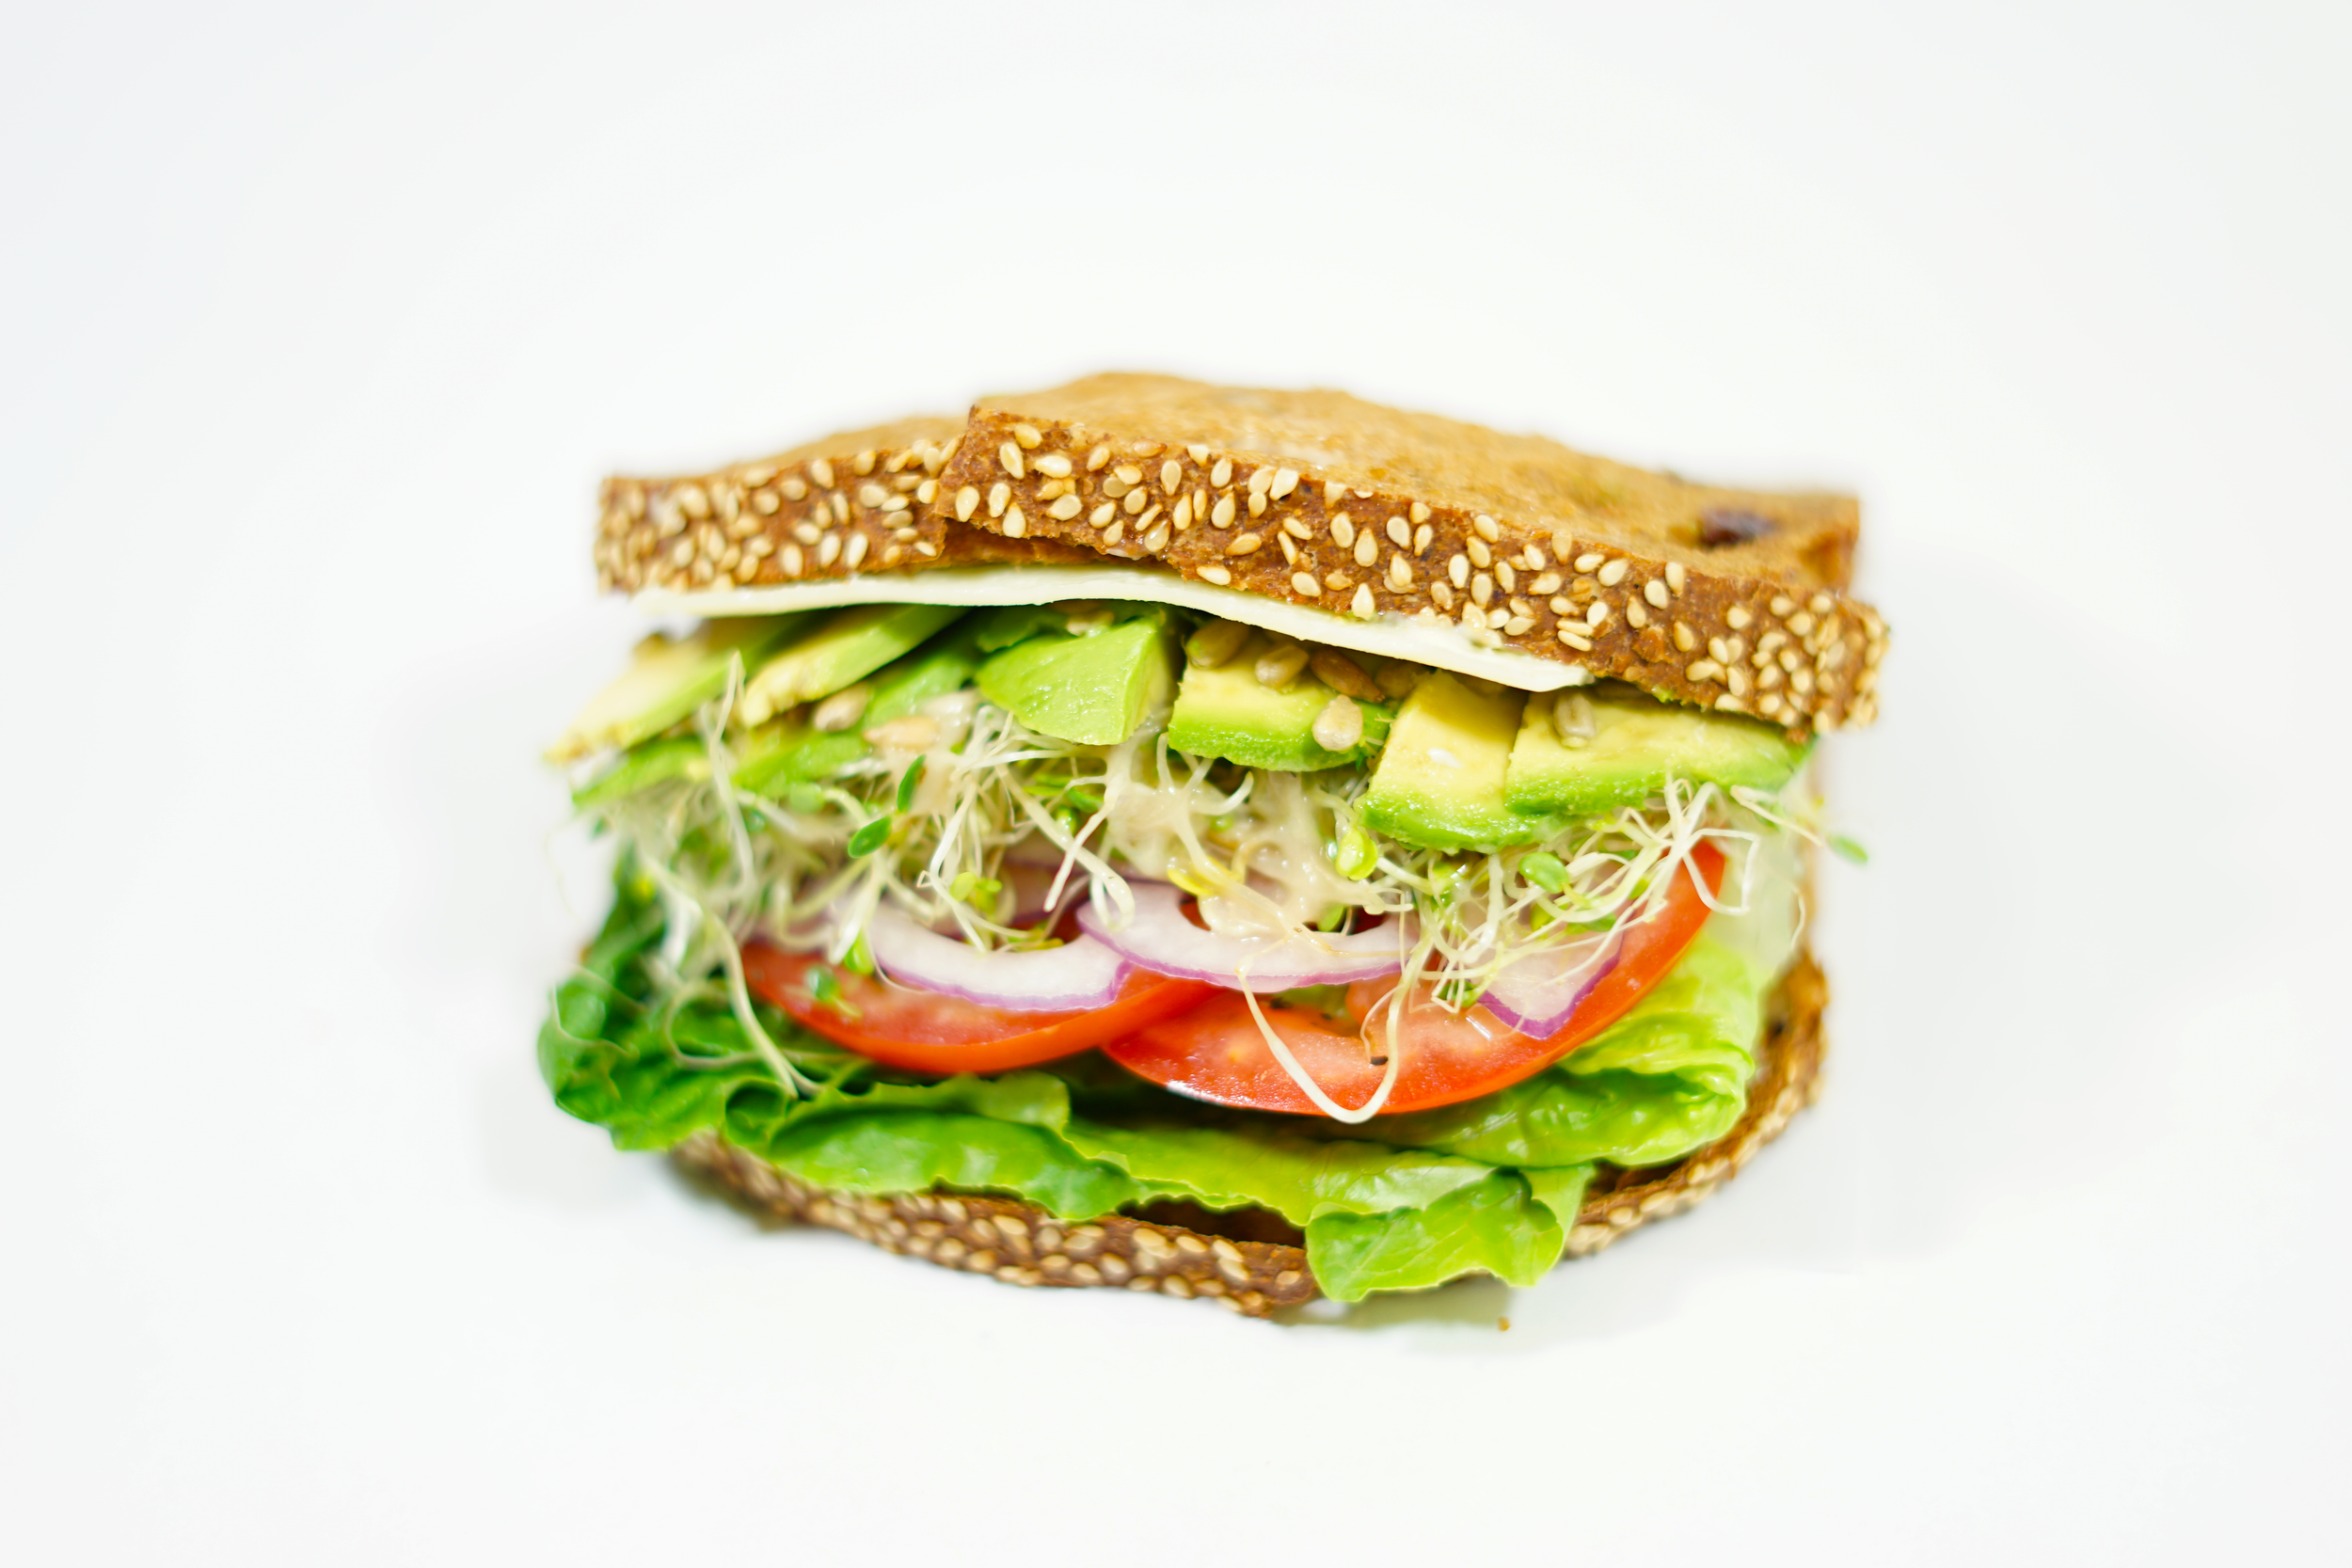 Vegetarian - On our 3 seed bread, also known as Raisin Walnut, with mayo, sliced avocado, sunflower seeds, swiss cheese, lettuce, sliced tomatoes and onions, sprouts, drizzled with dijon vinagrette dressing, and sprinkle of salt and pepper.